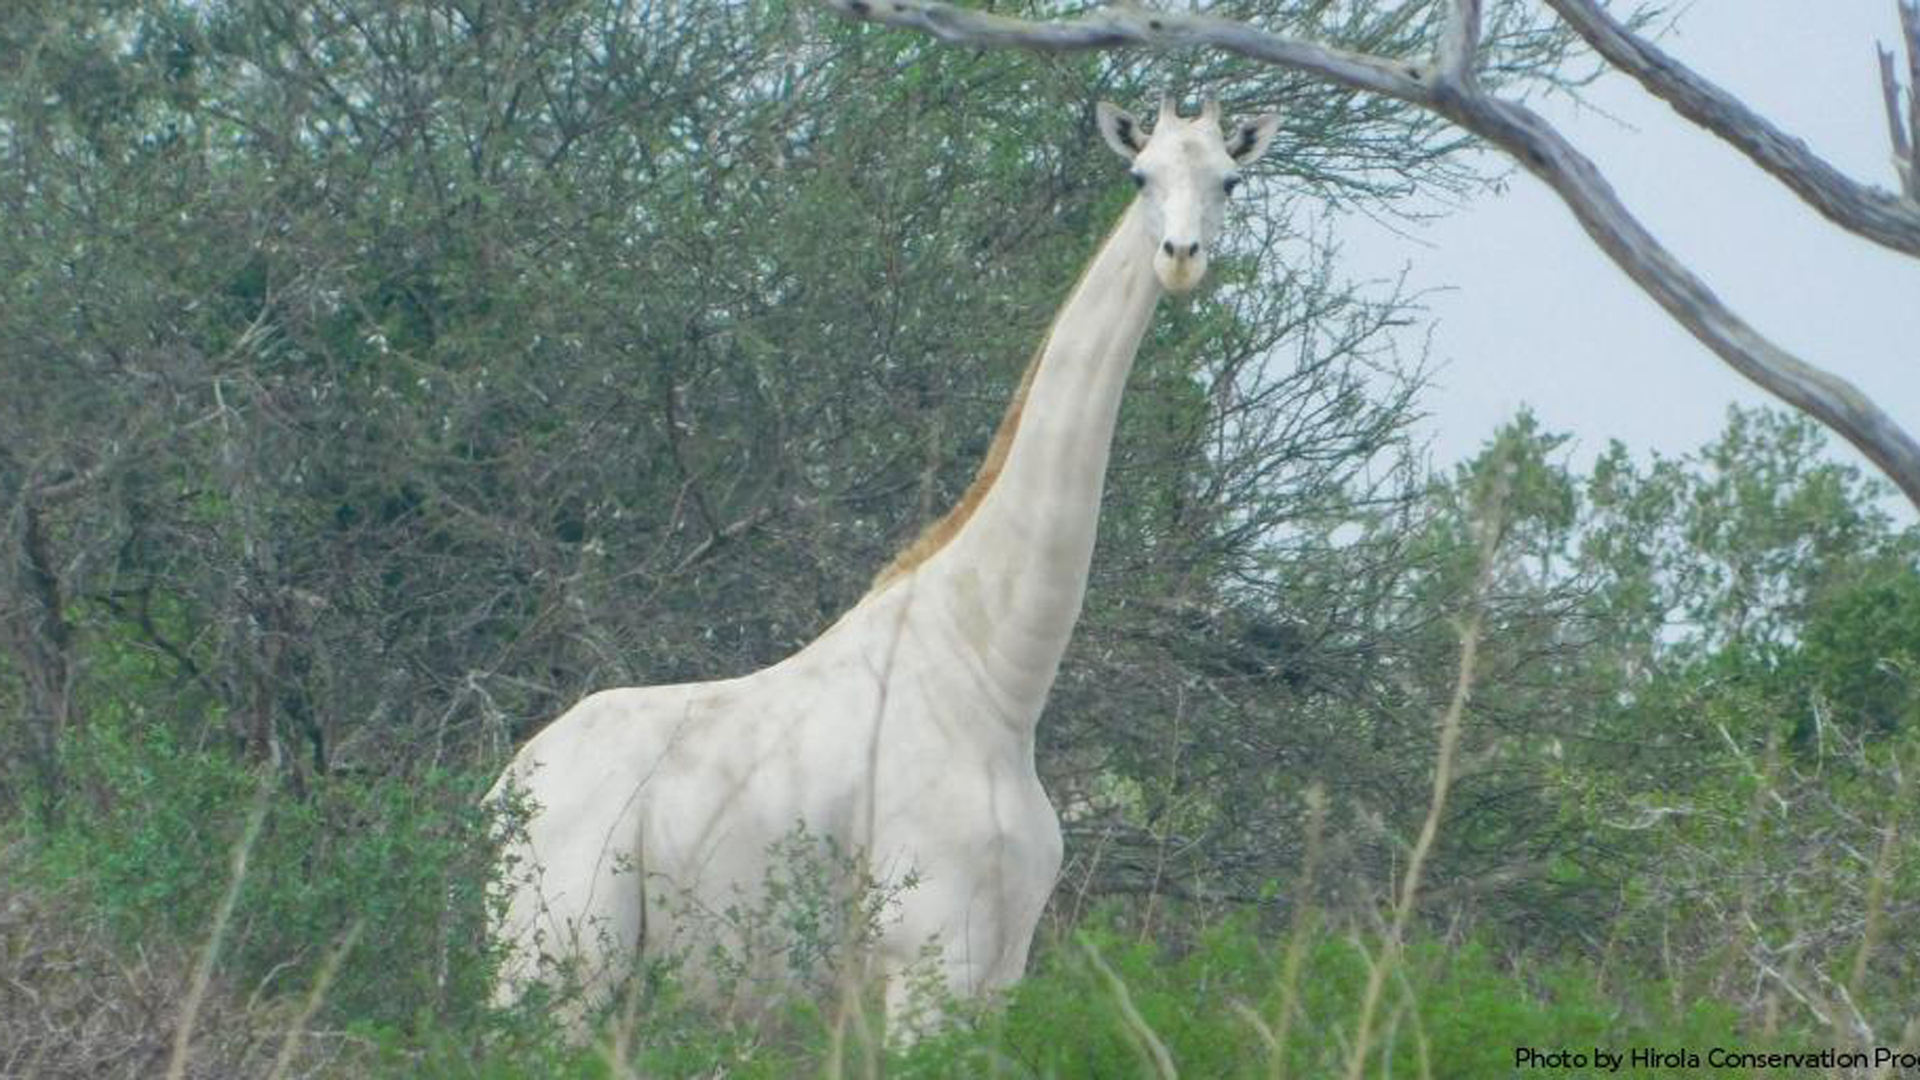 A white giraffe is seen in a photo tweeted by the Hirola Conservation Programme.